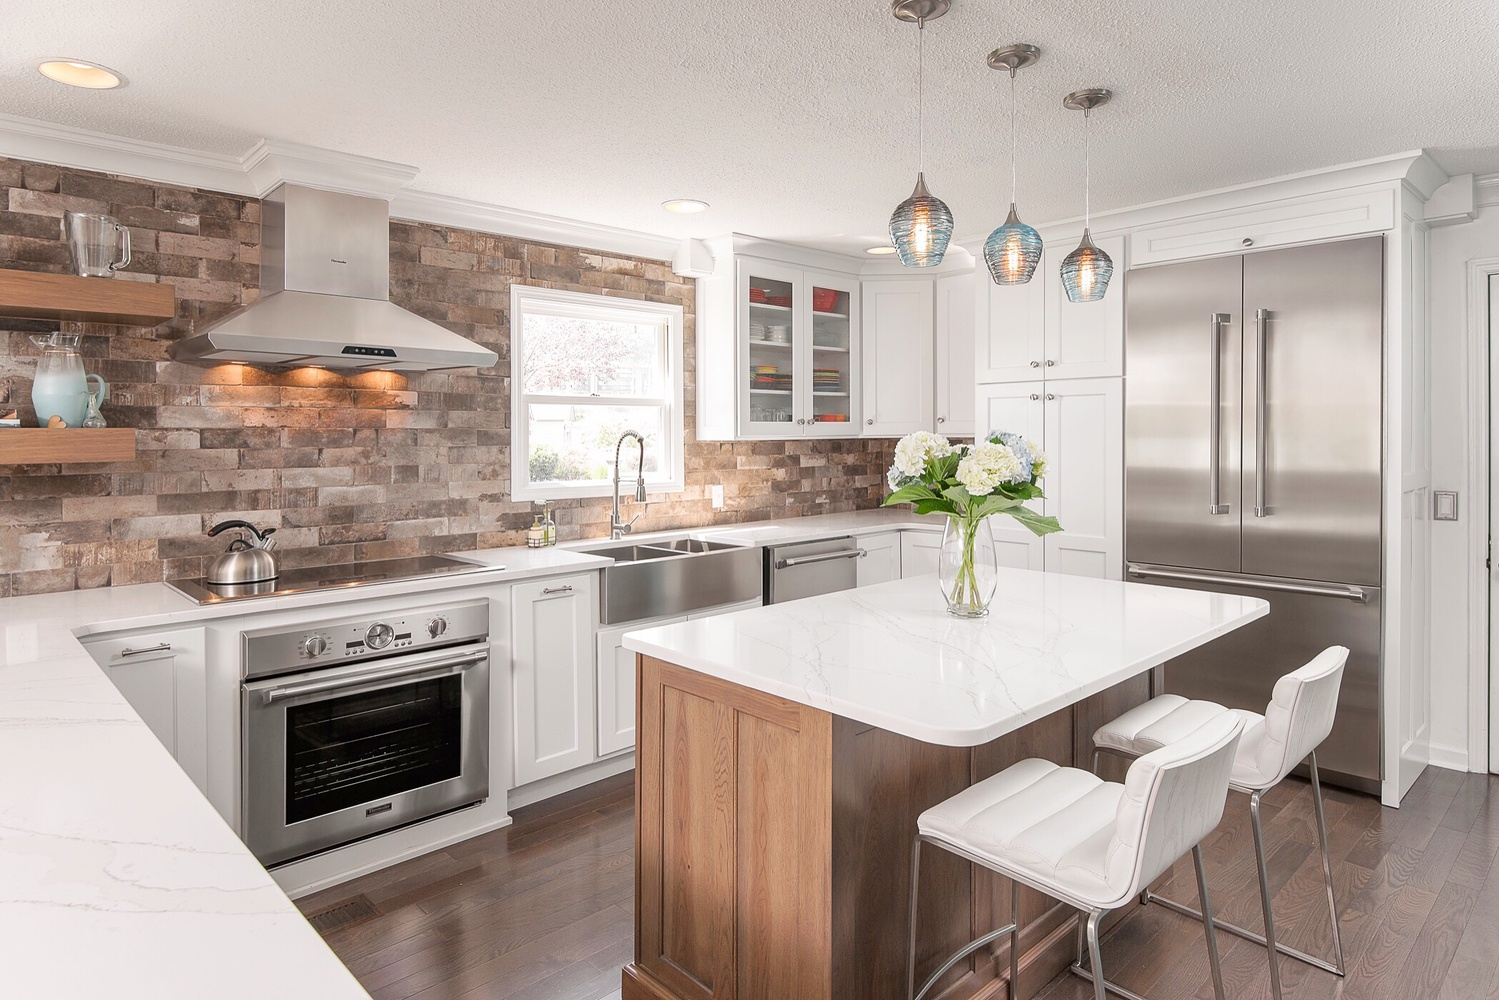 Residential Kitchen by Morgan Nowland